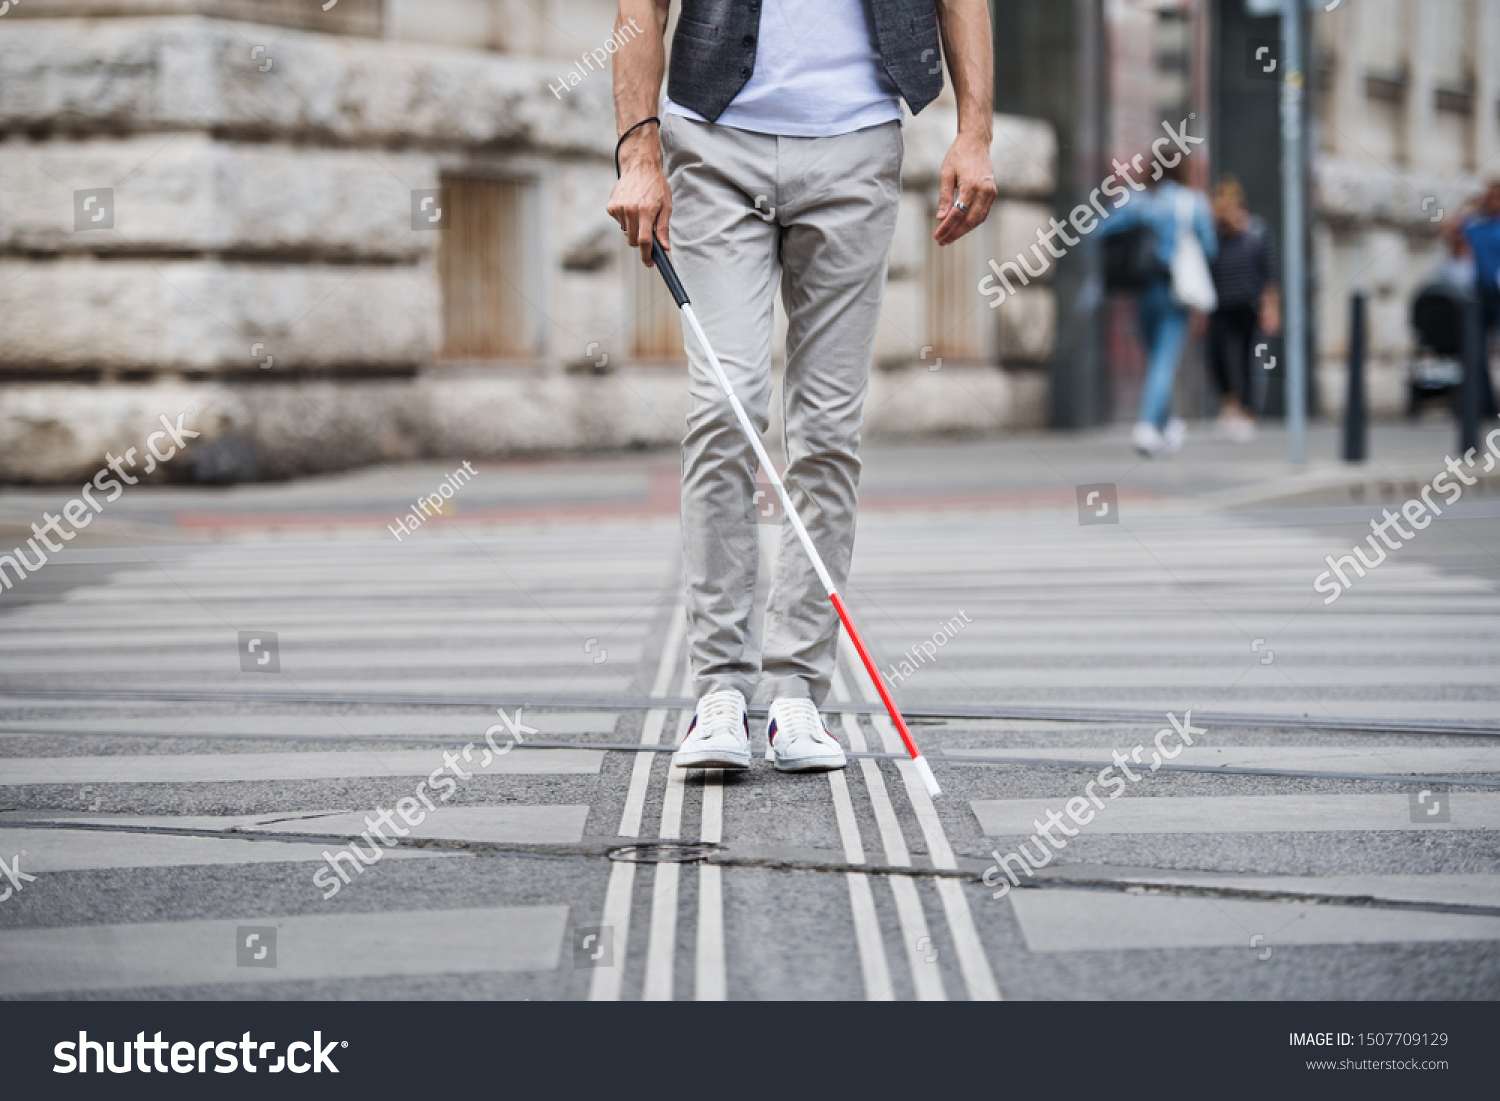 Midsection of young blind man with white cane walking across the street in city. #1507709129